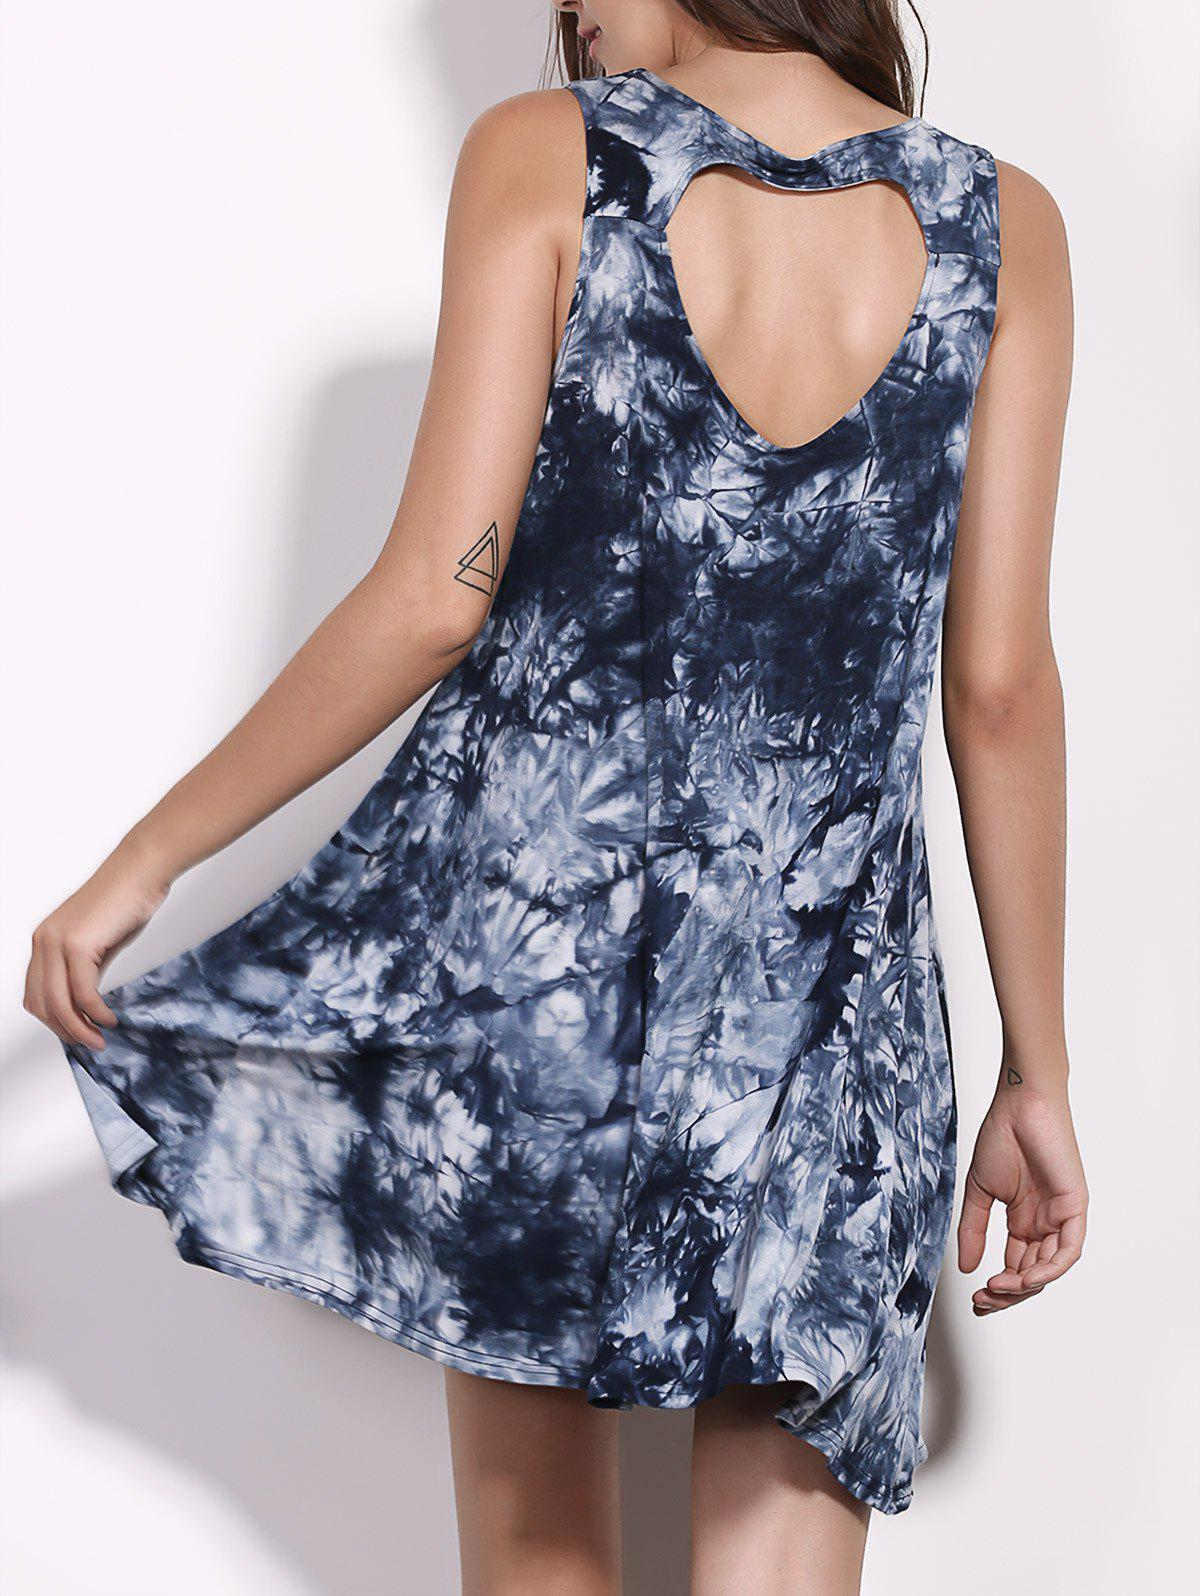 Casual Women's Scoop Neck Floral Print Hollow Out Sleeveless Dress - COLORMIX M